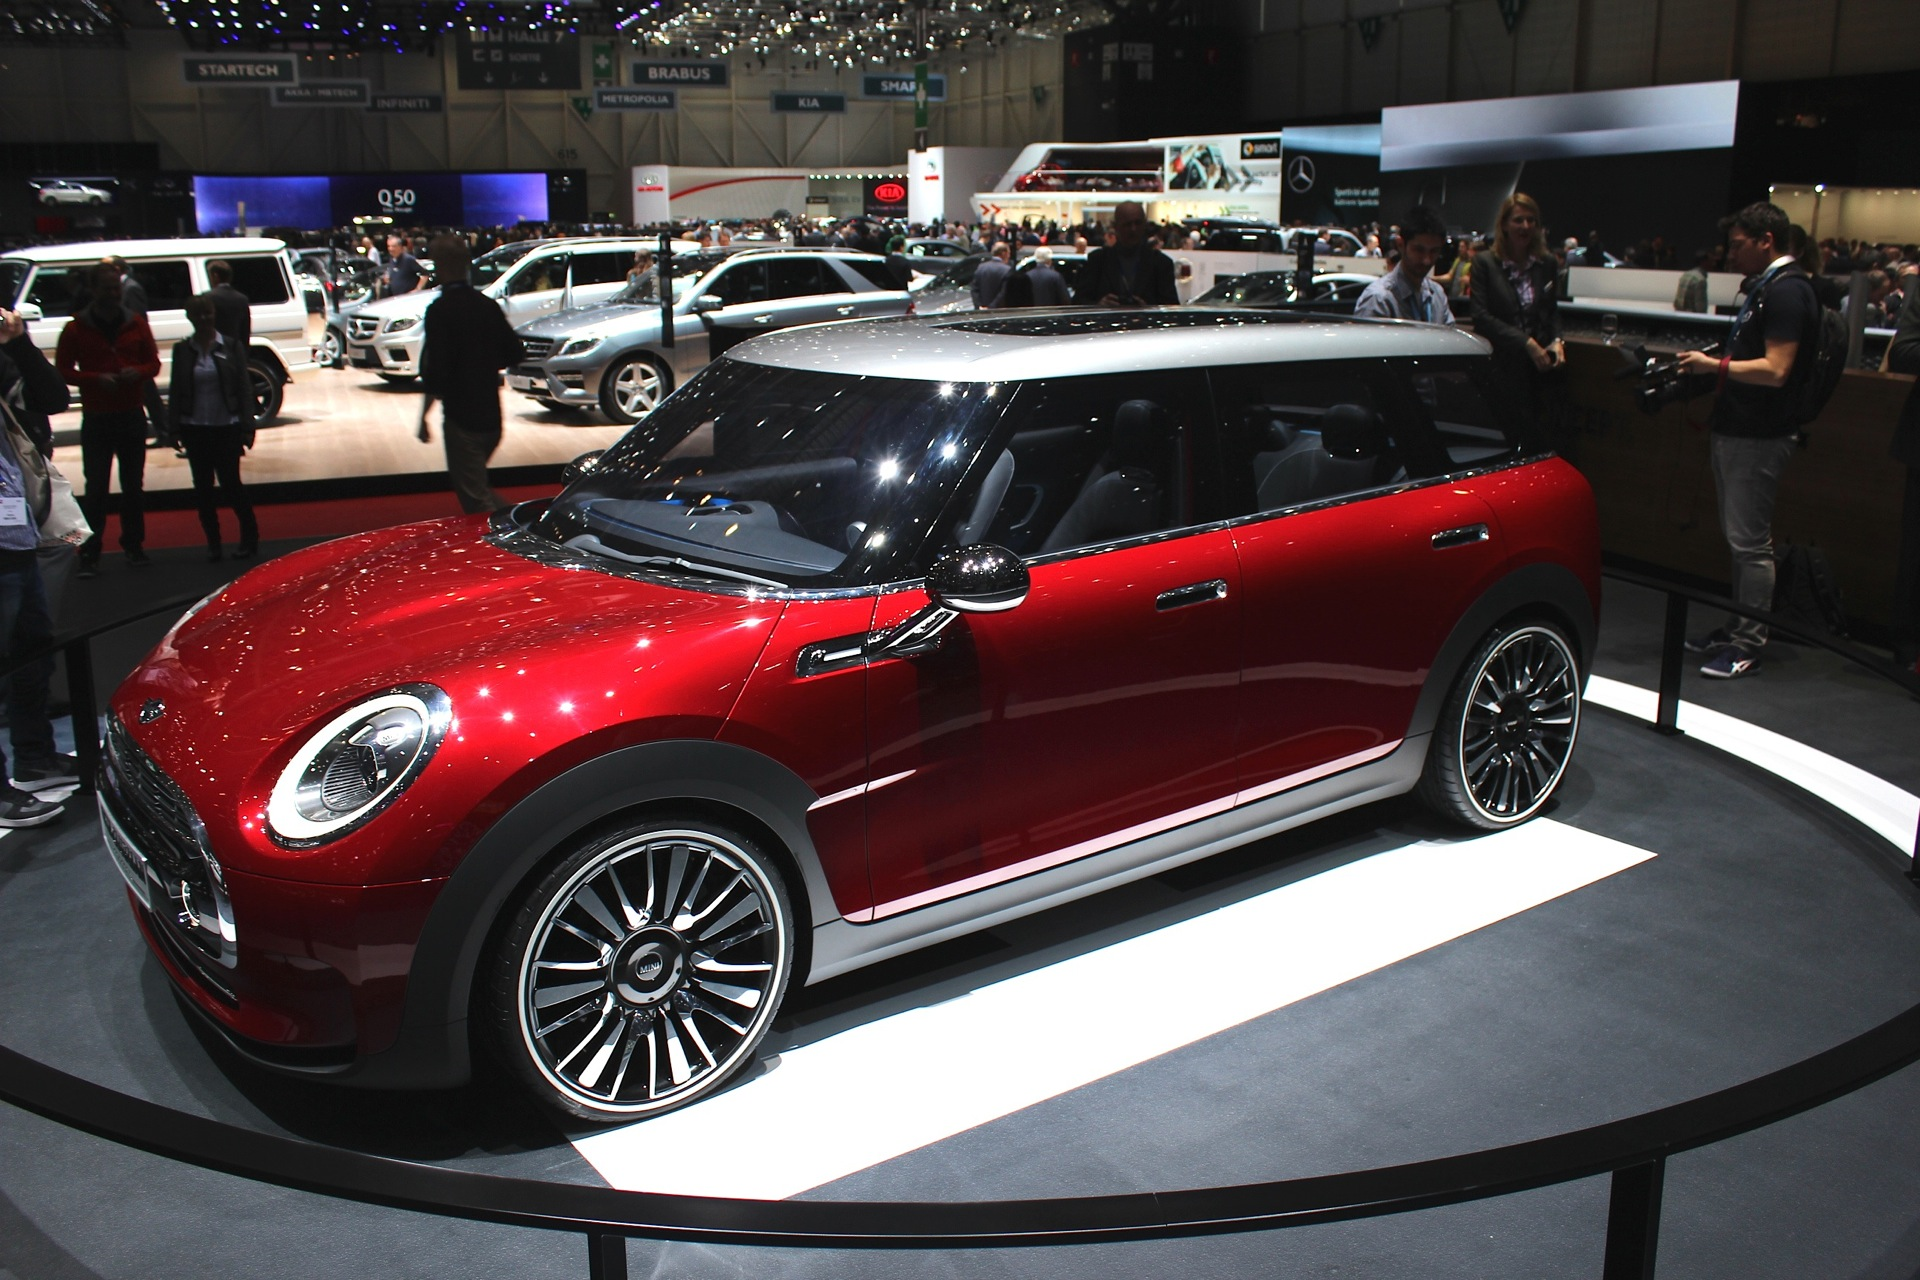 Mini Clubman Concept Live Photos From Geneva Motor Show